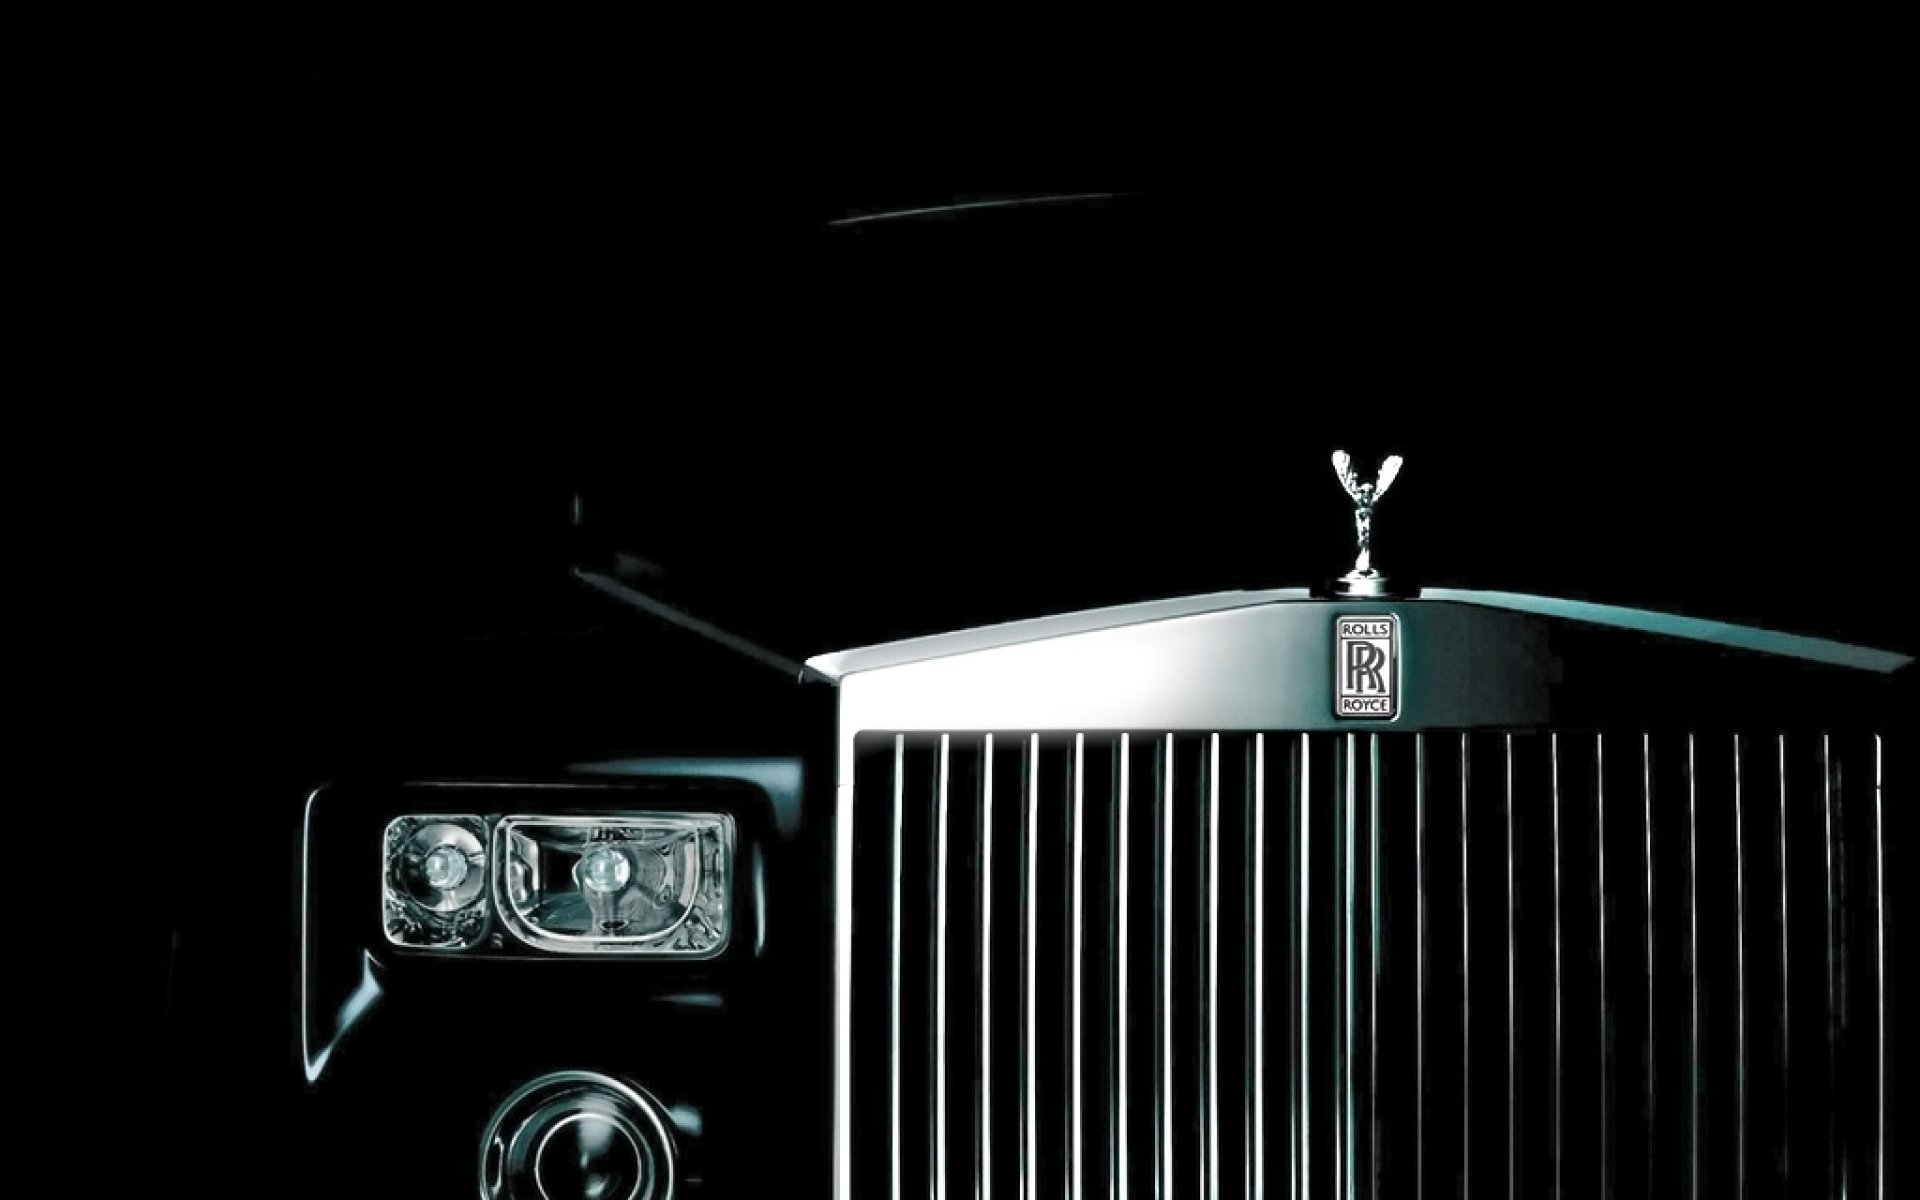 Rolls Royce Phantom Hd Wallpaper Background Image